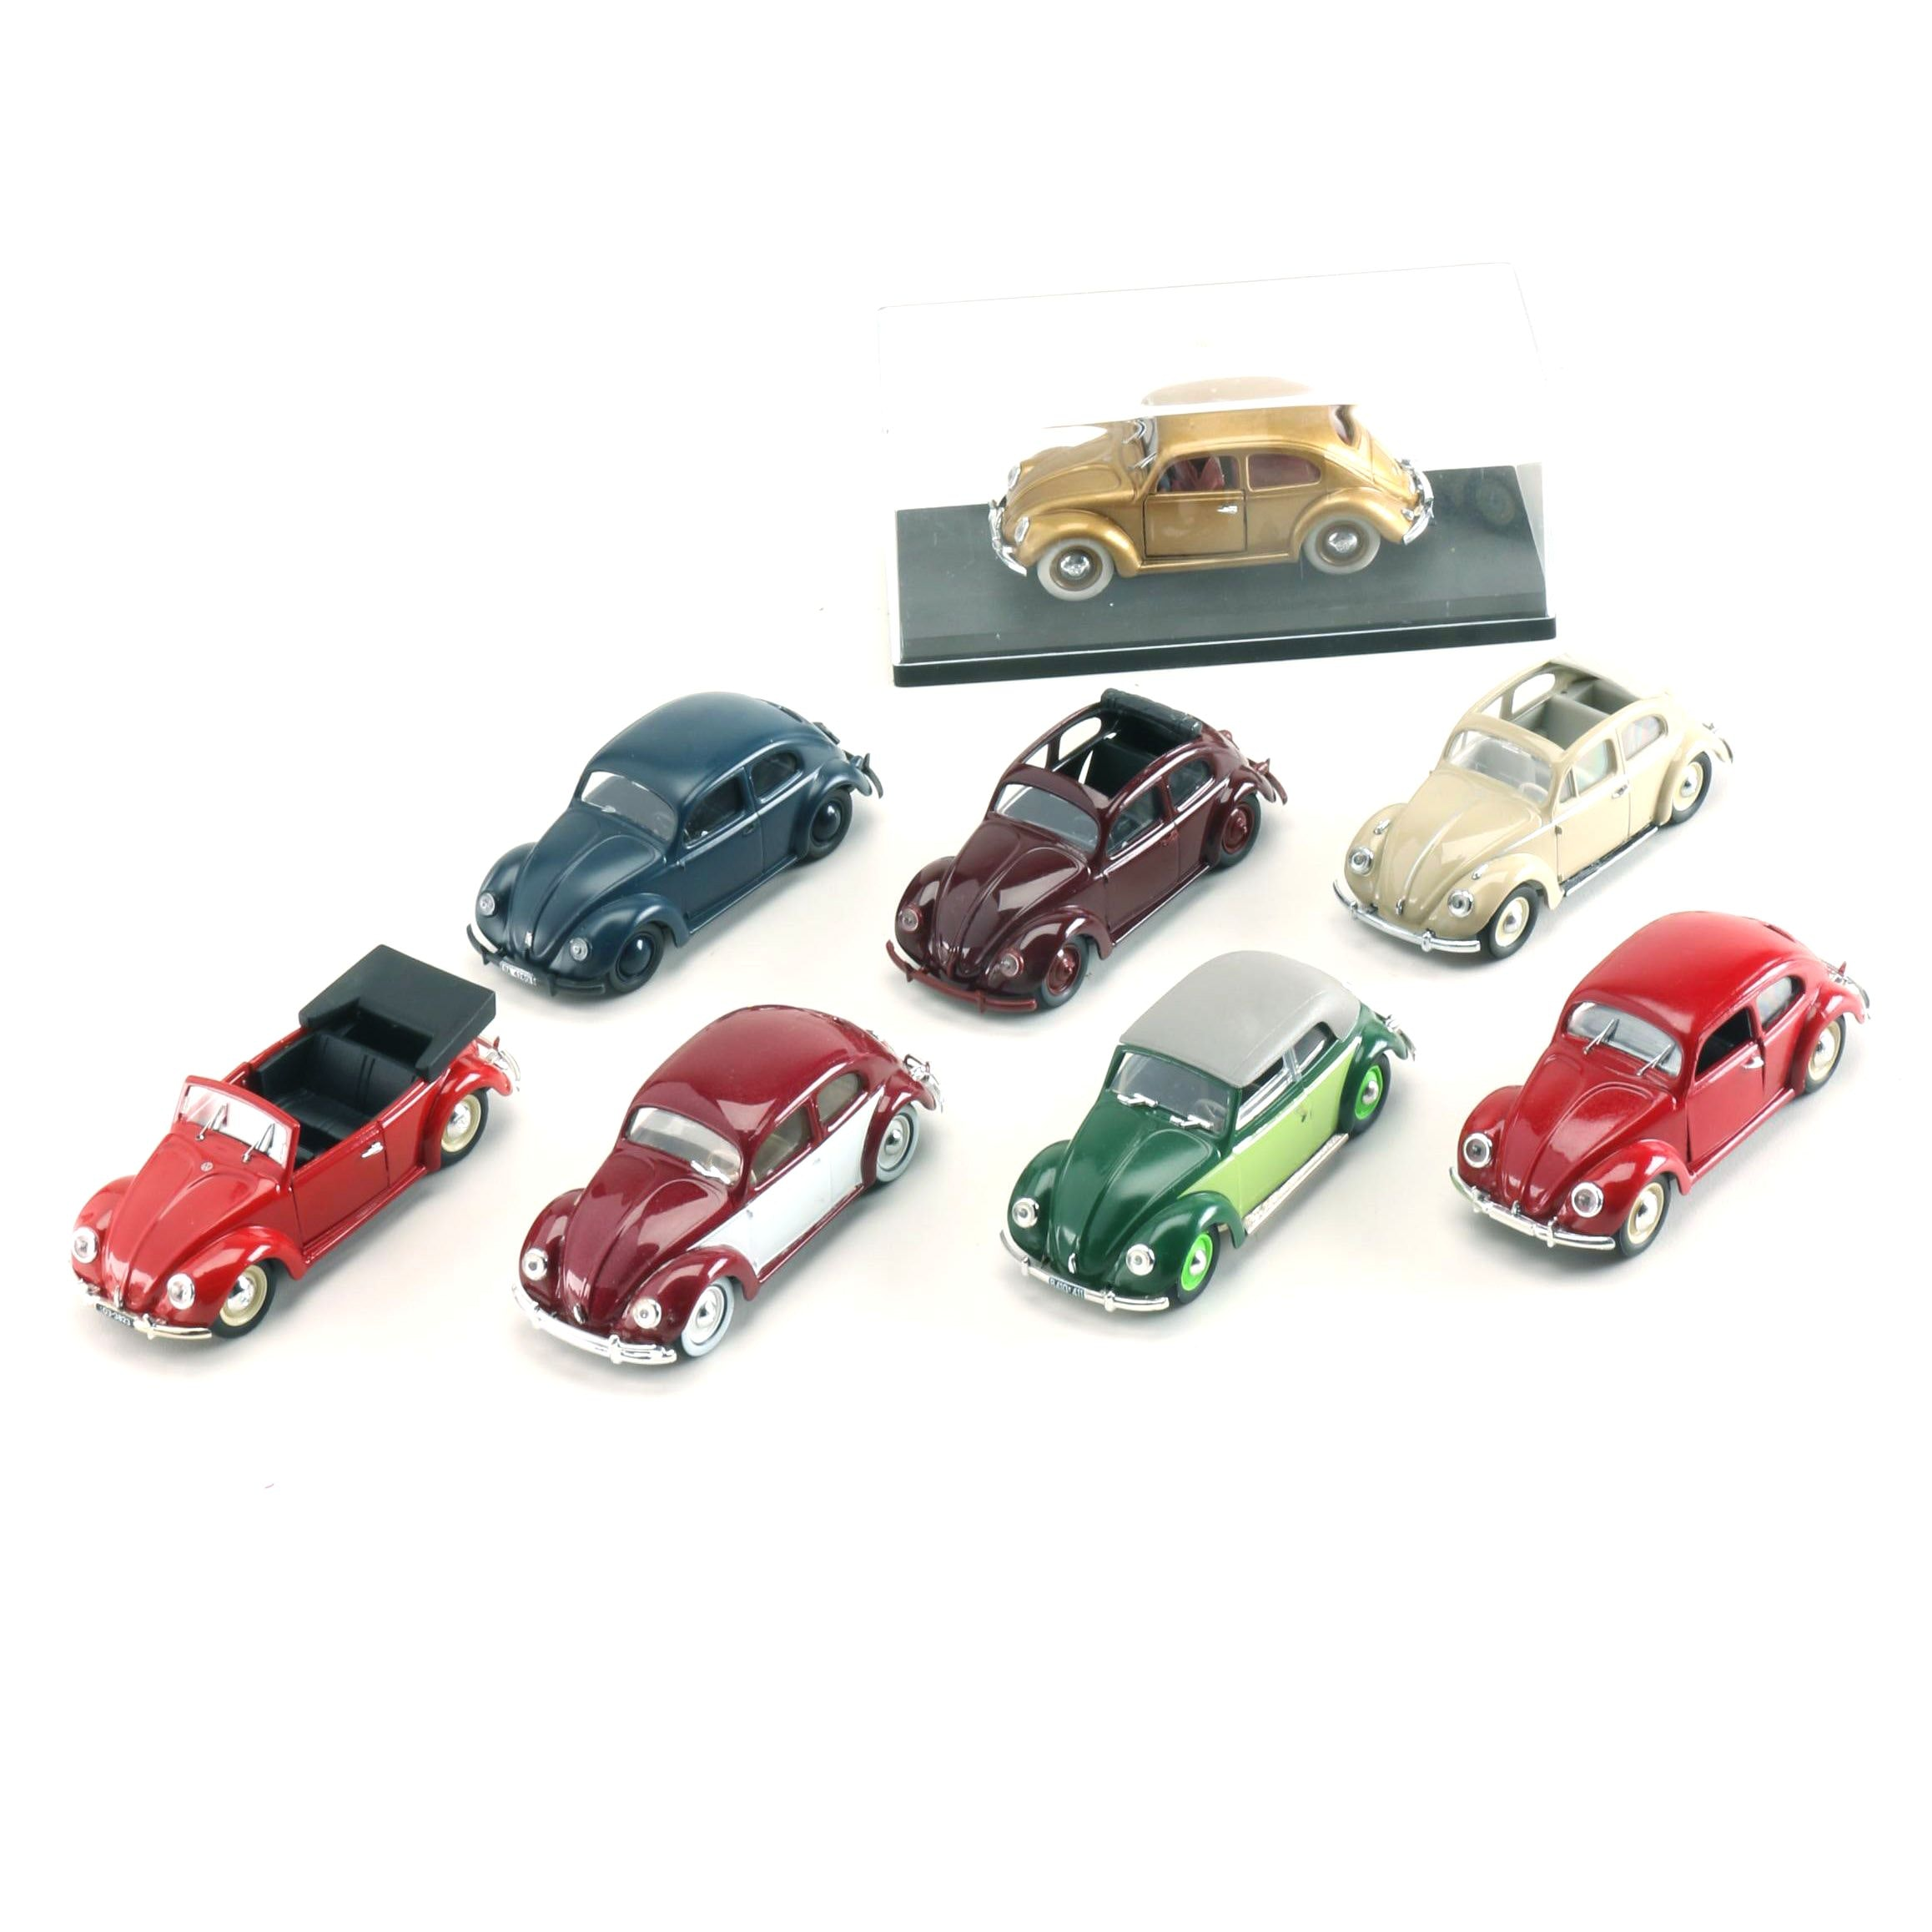 Collection of 1:43 Scale Volkswagen Models